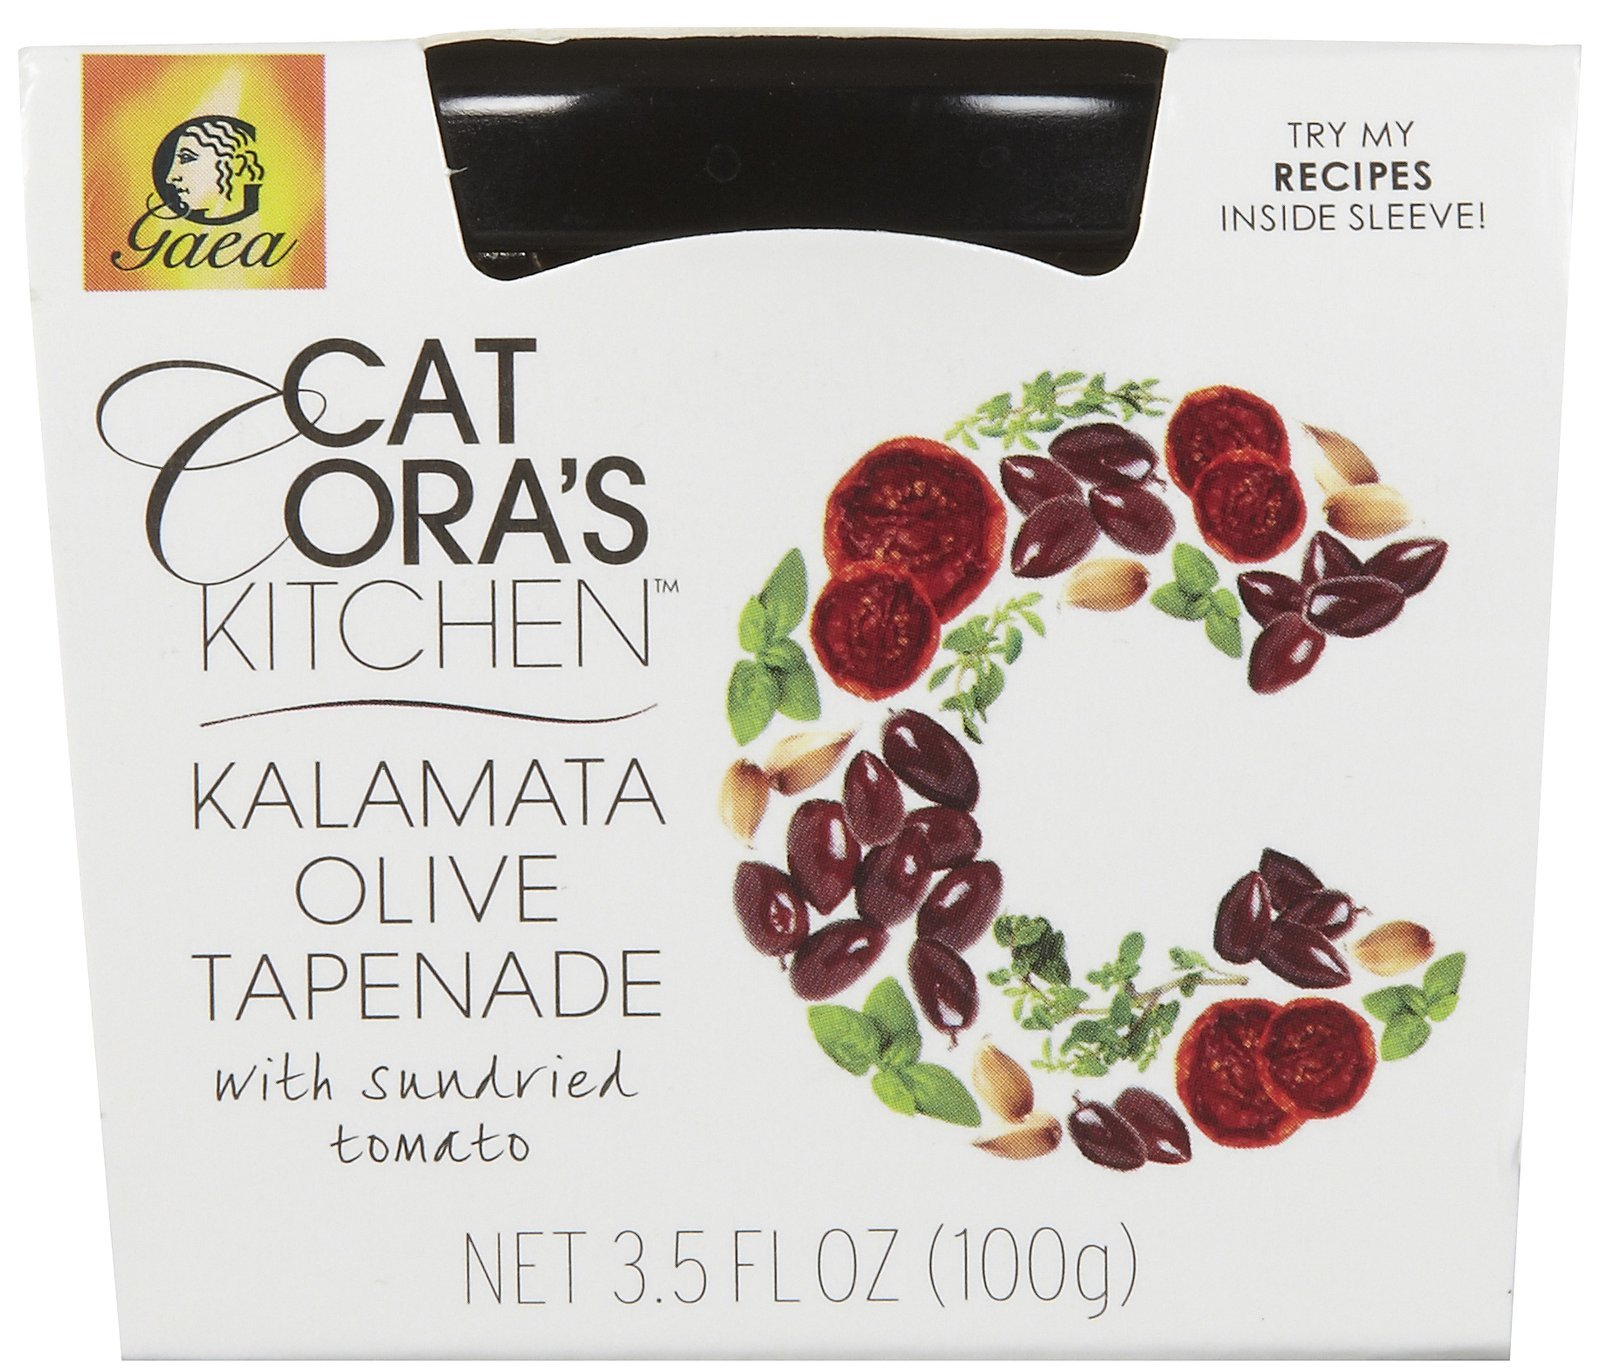 Gaea Cat Cora's Kitchen Kalamata Olive Tapenade, 3.5 oz Jars, 6 pk by Gaea